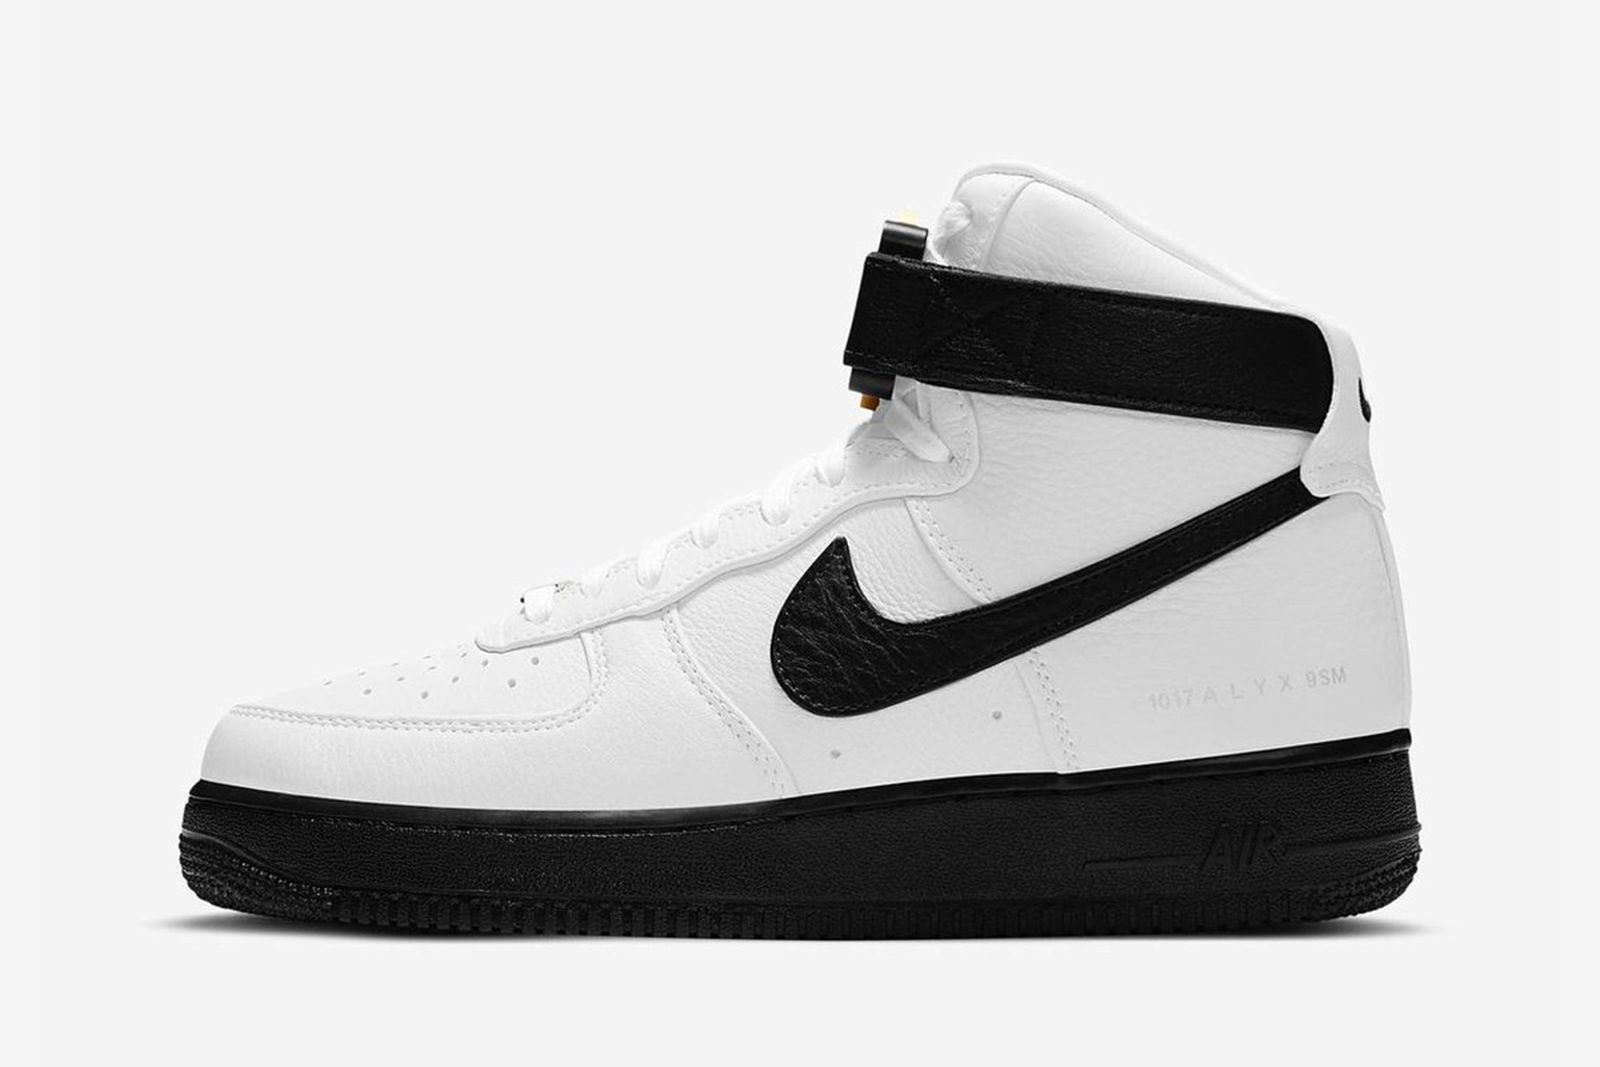 1017-alyx-9sm-nike-air-force-1-high-white-release-date-price-new-04